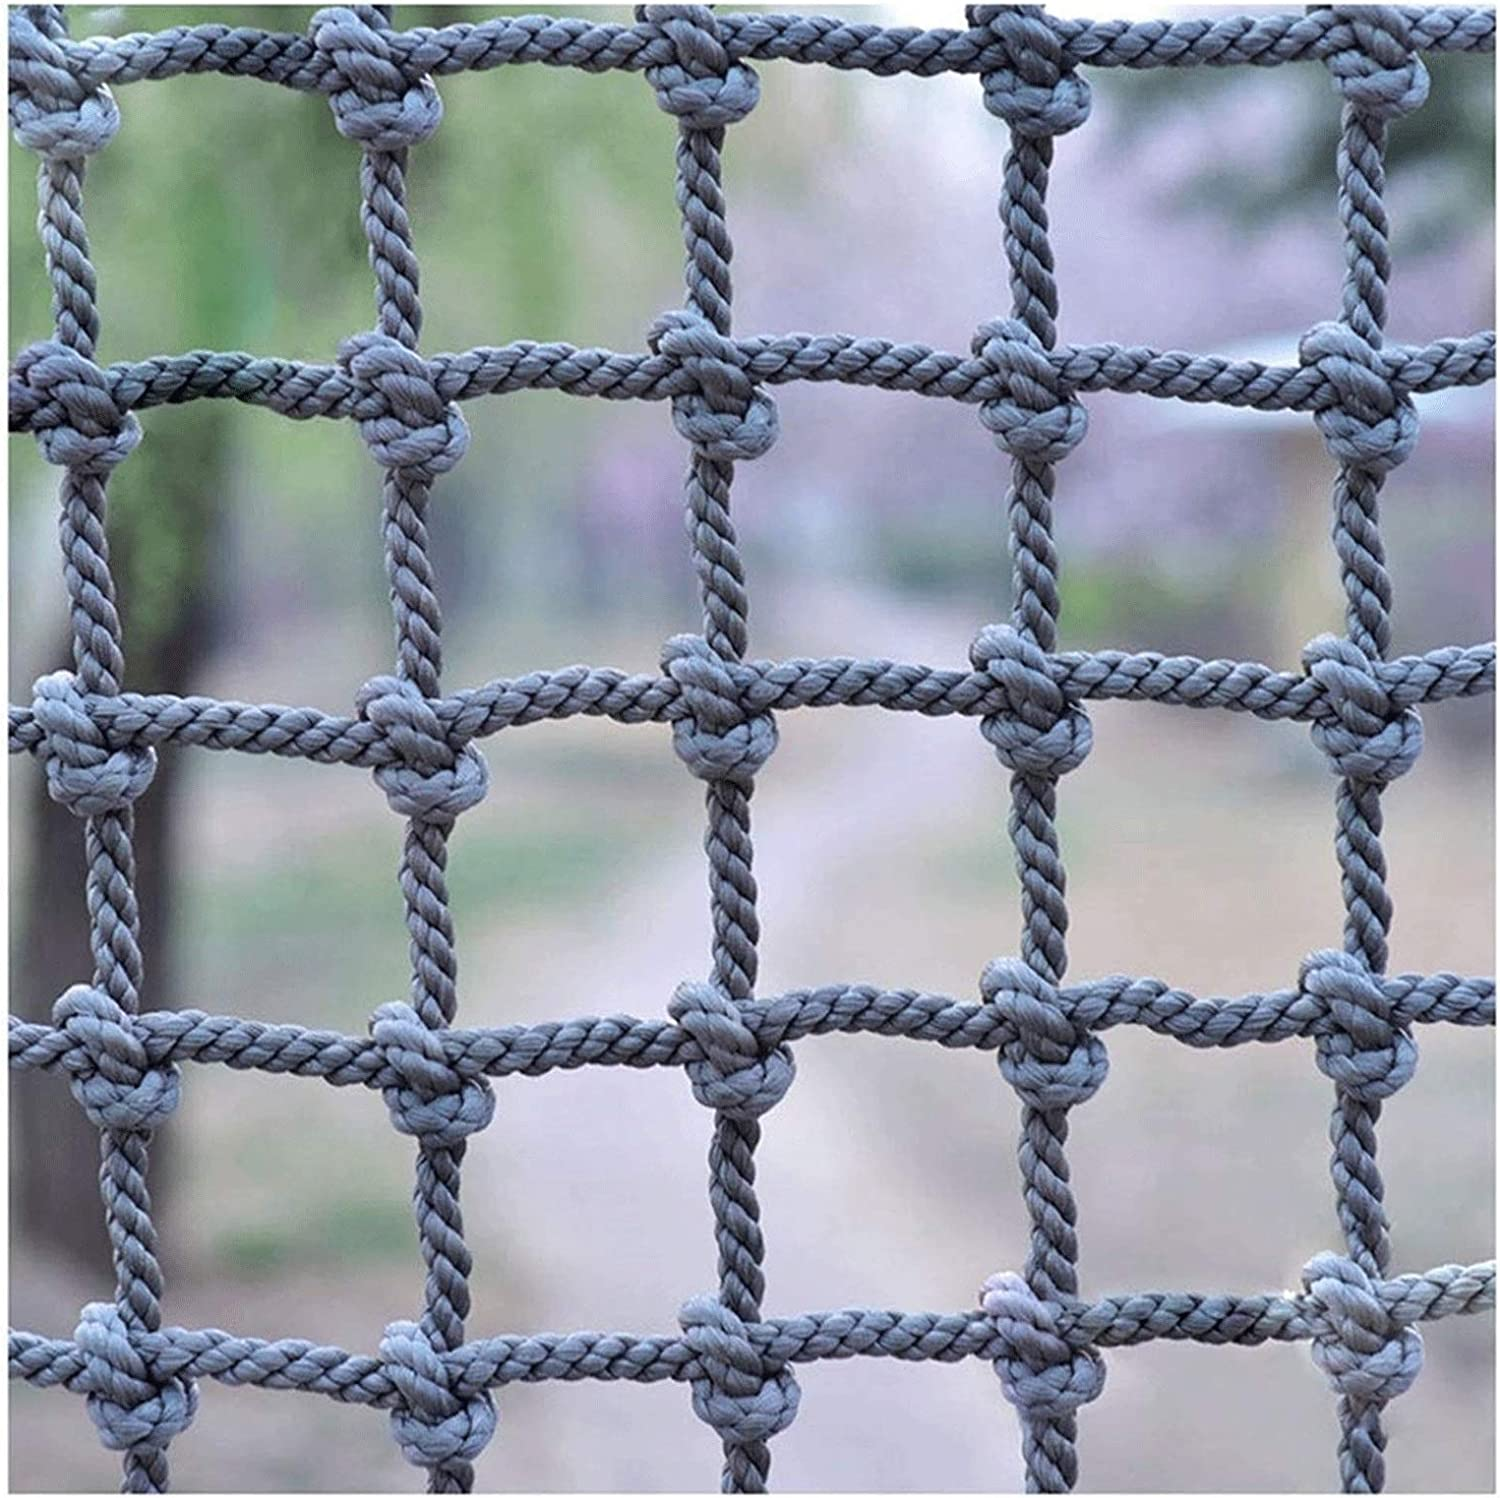 LYRFHW Outdoor Climbing Nylon Nets Stair Netting Safety Lowest price challenge Training shop